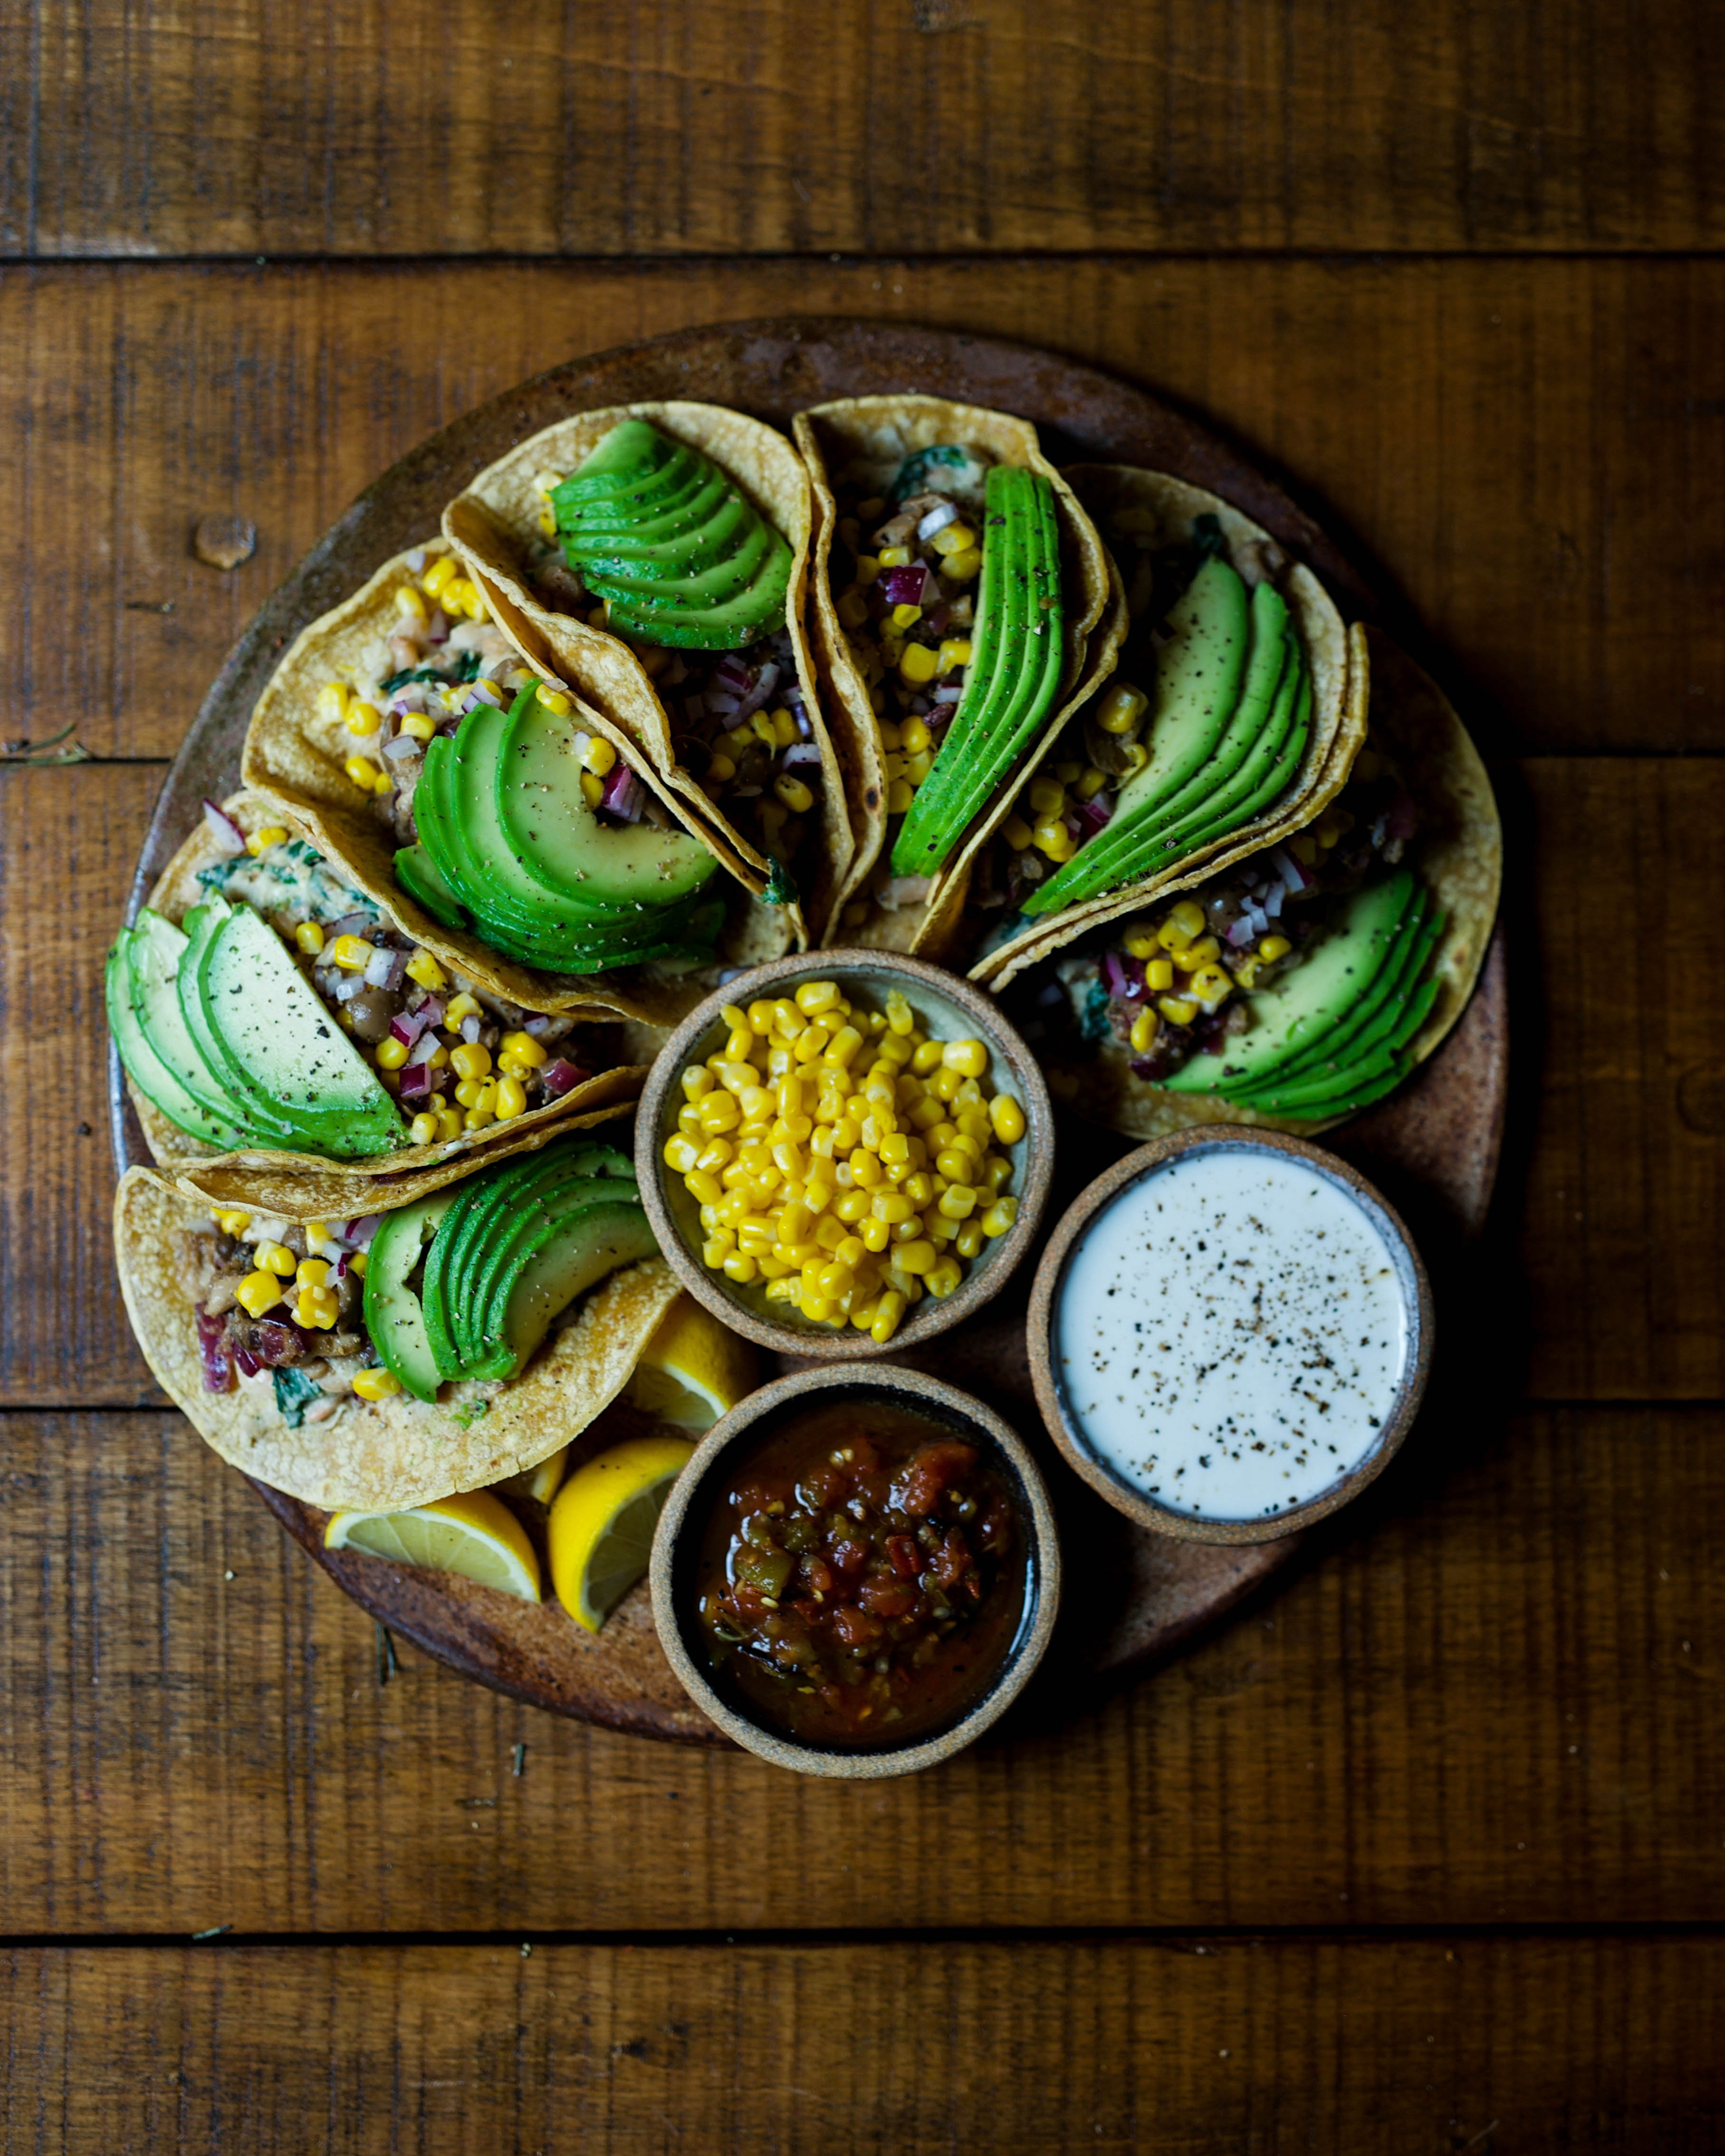 Avocado tacos arranged on a brown plate